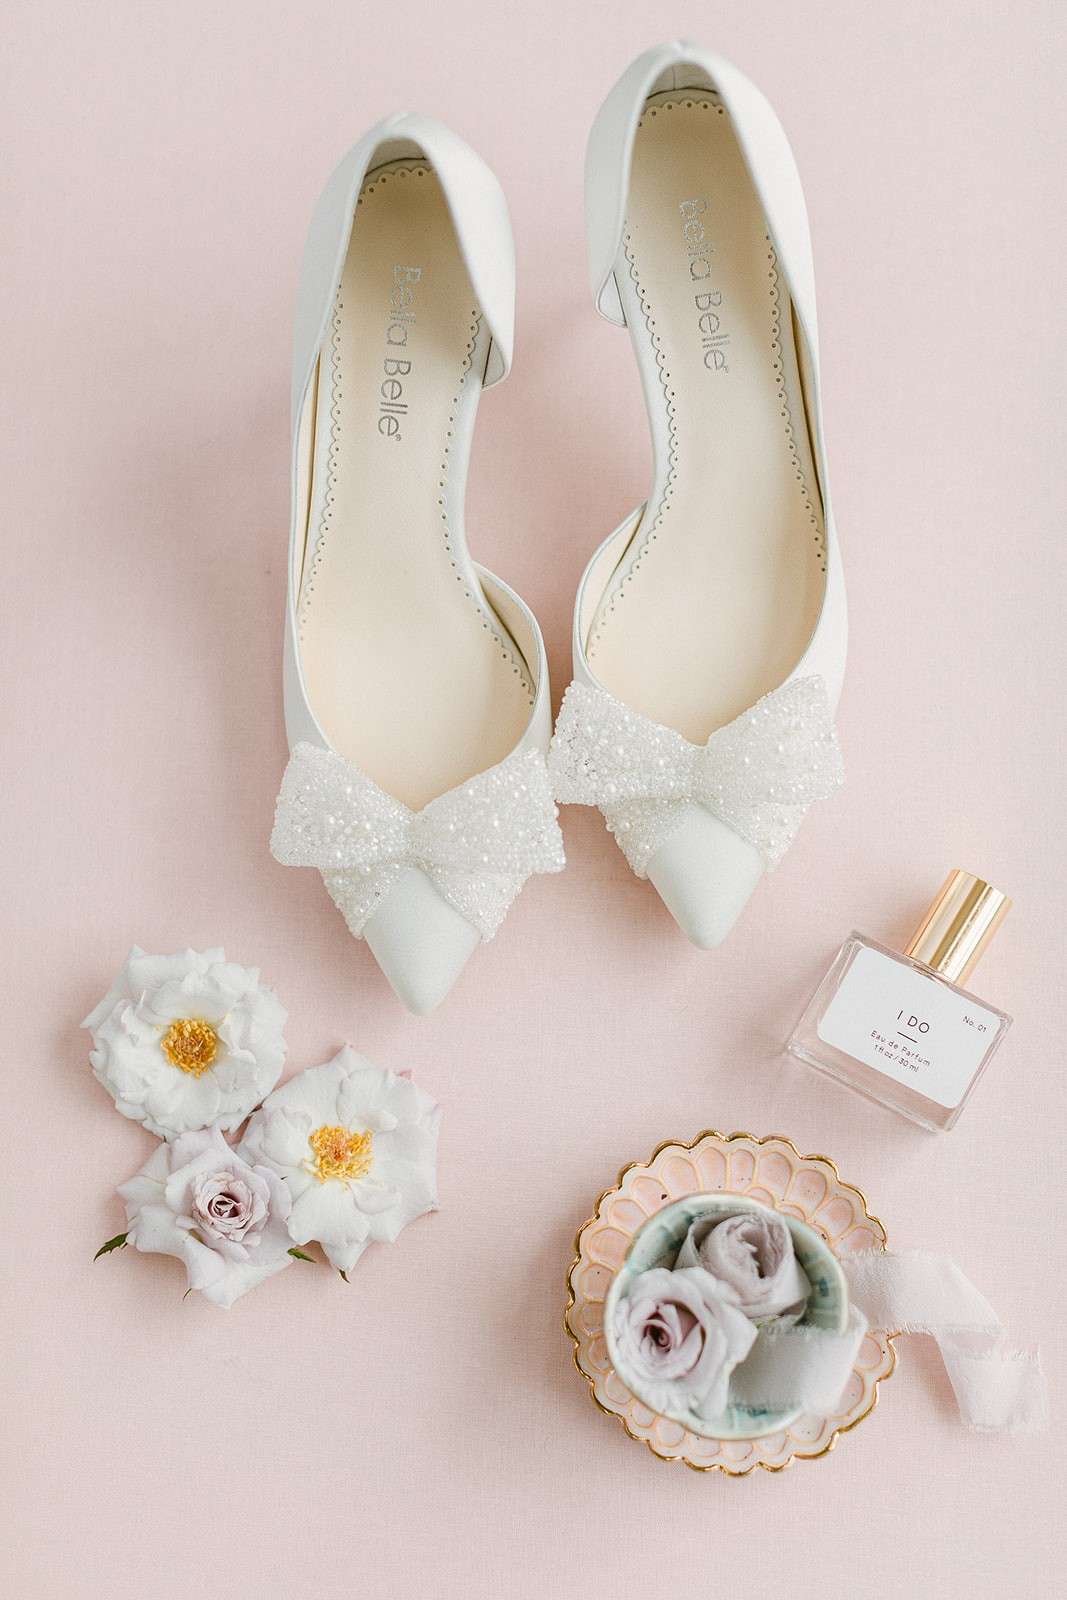 Luxury Way To Use Color in Your Wedding